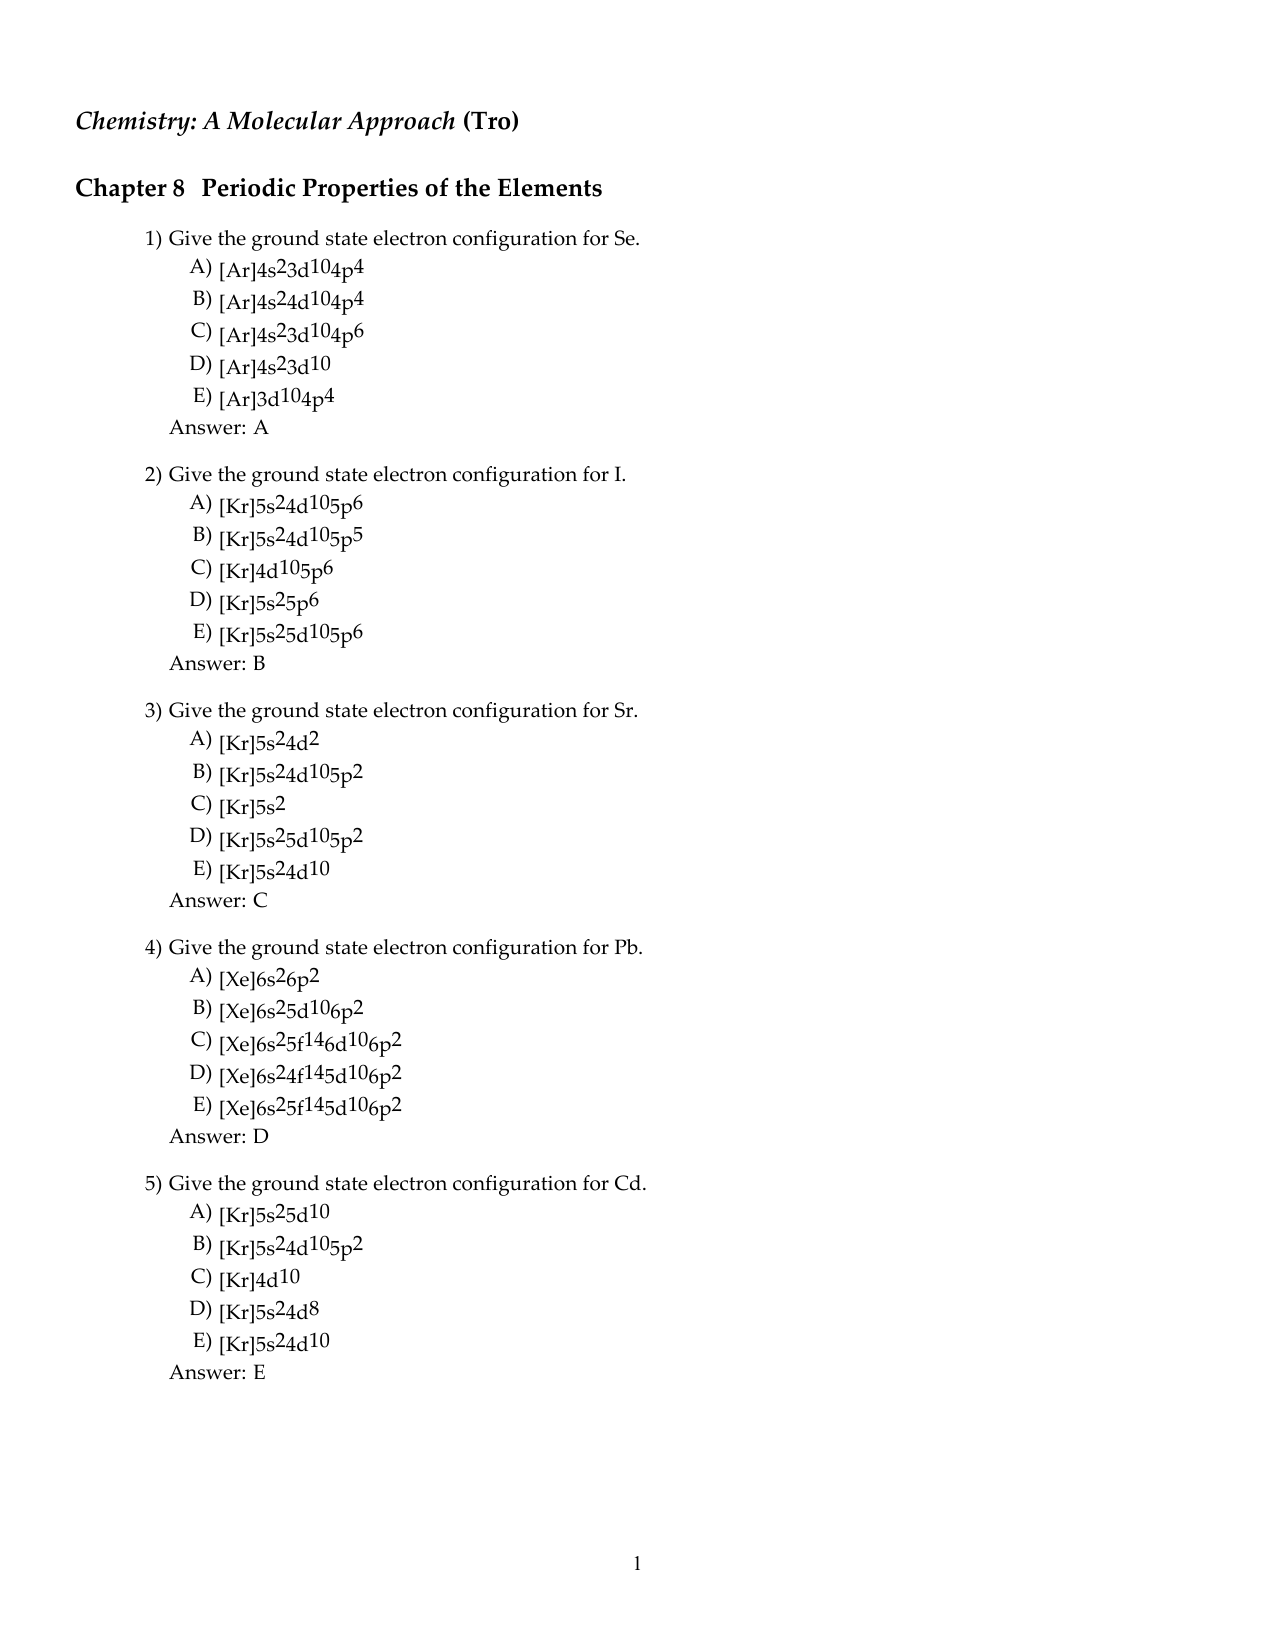 Chapter 8 Review Sheet